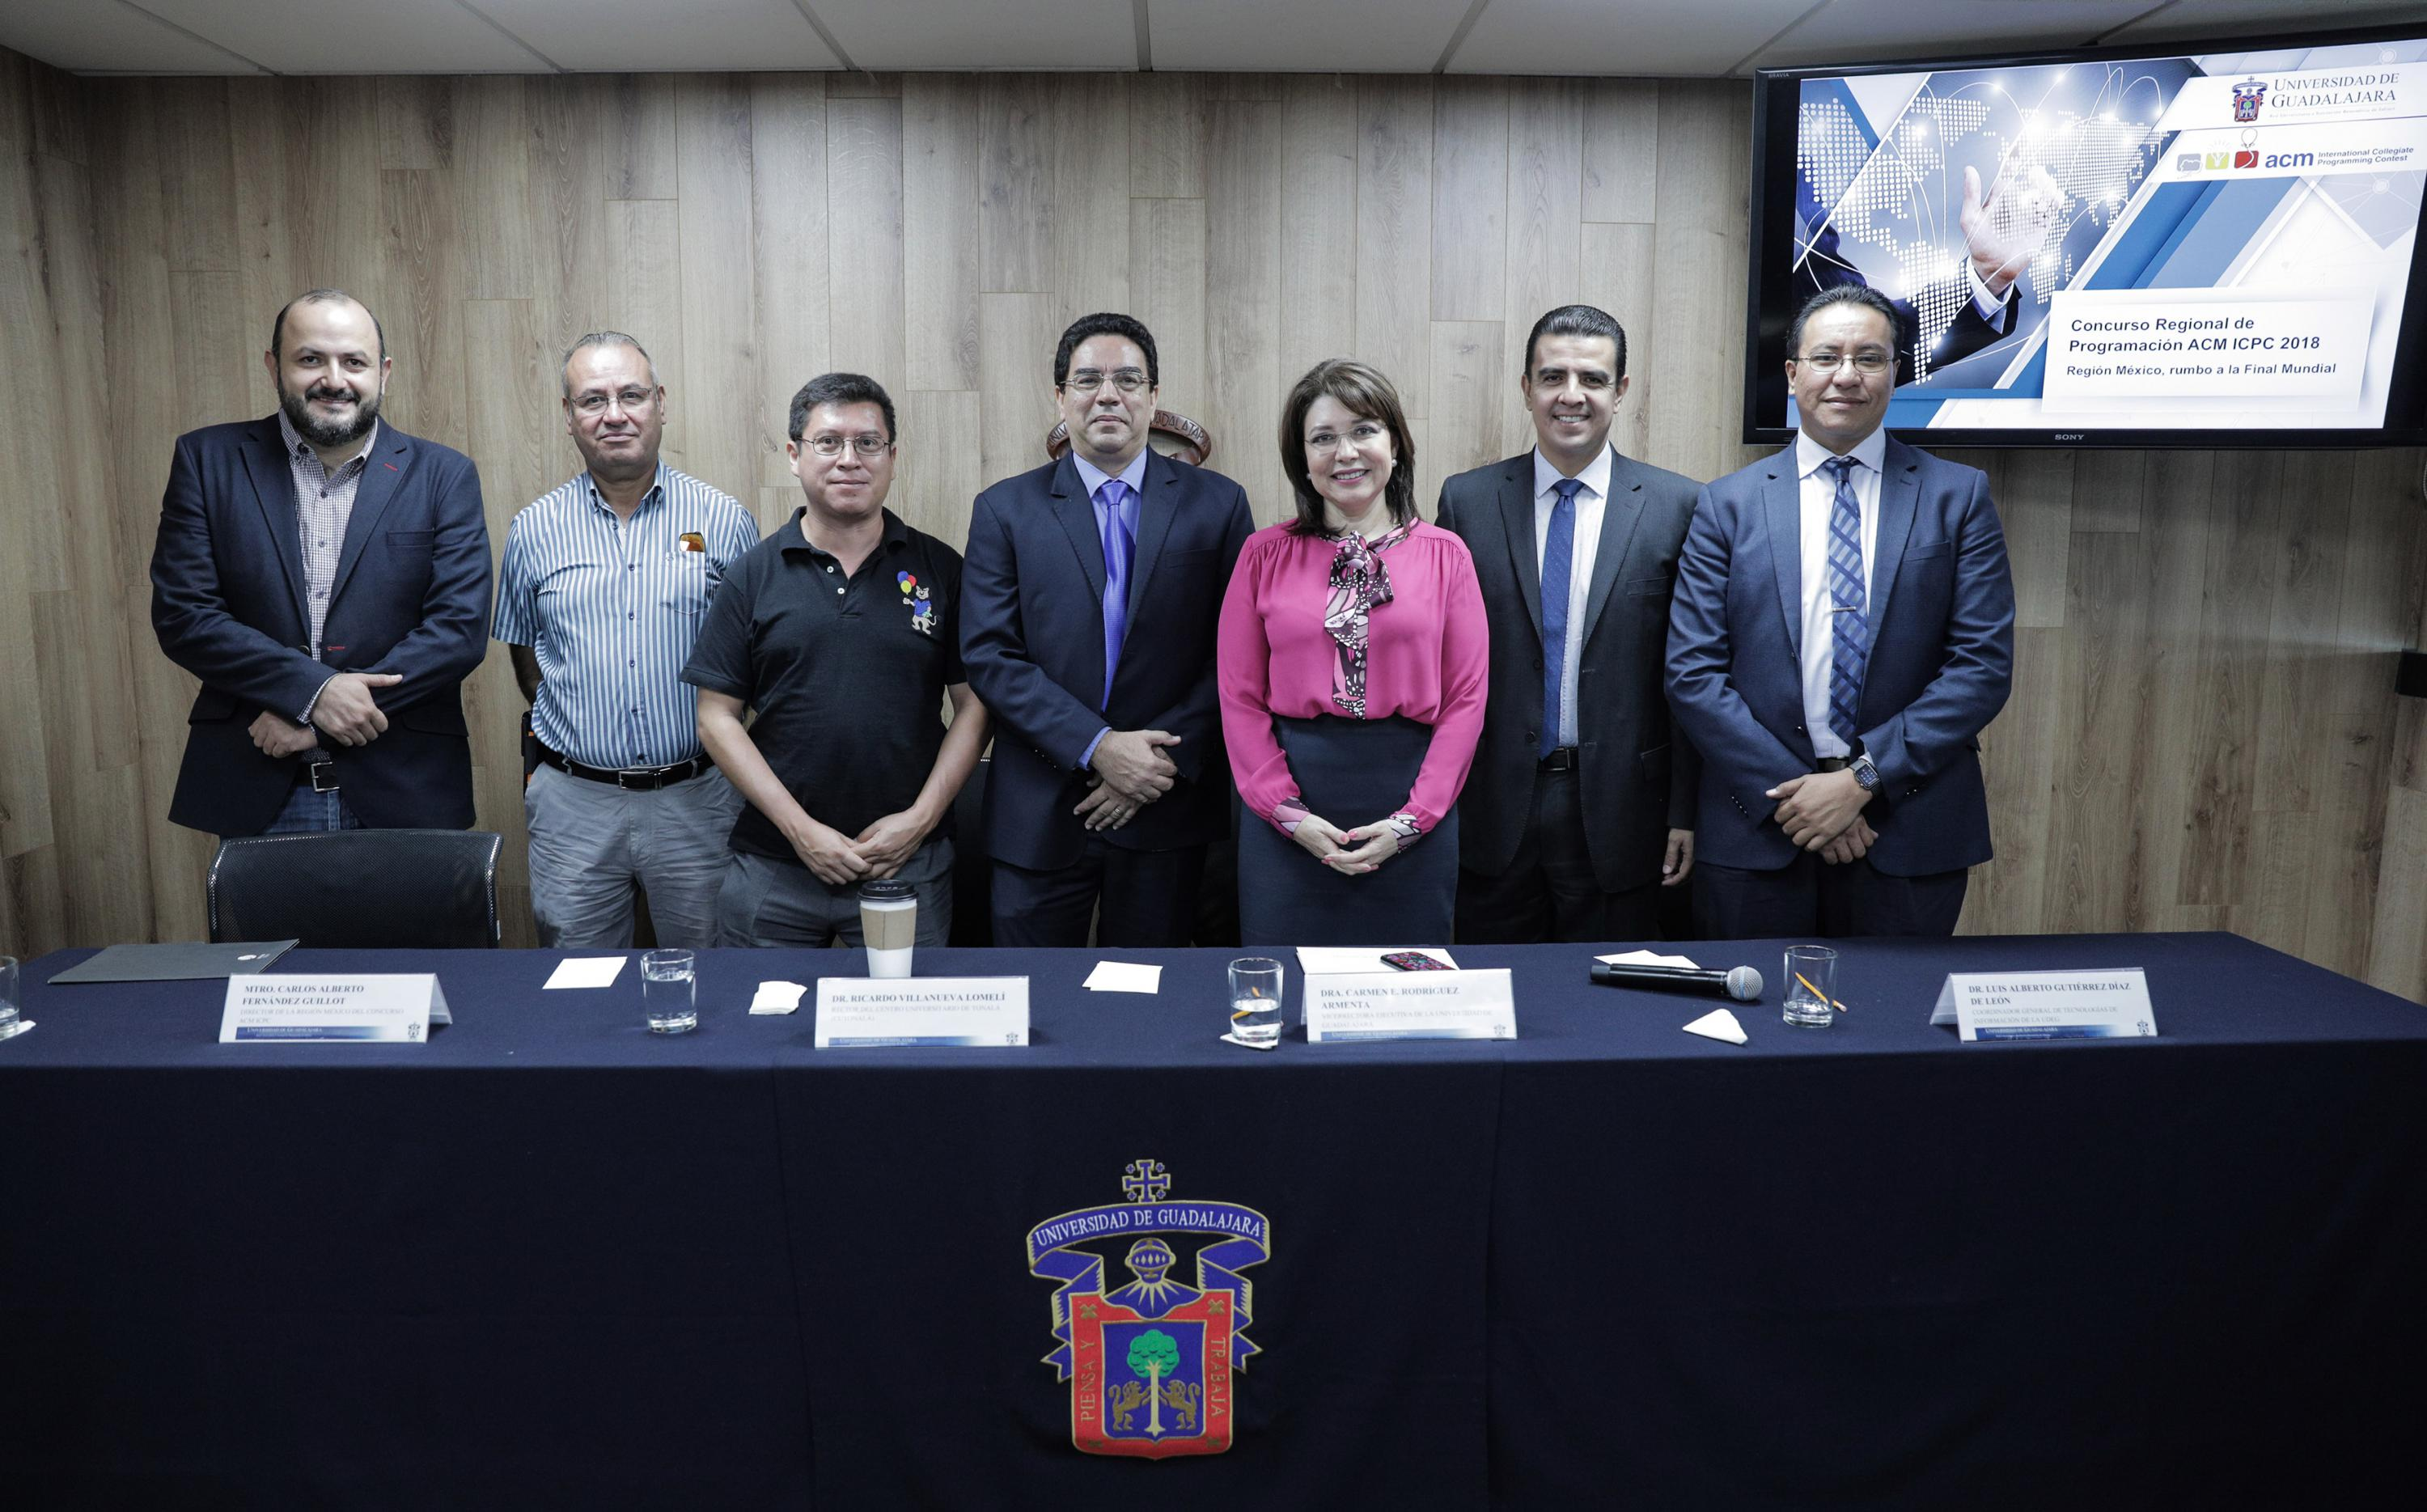 Rueda de prensa para anunciar el International Collegiate Programming Contest de la Association for Computing Machinery (ACM ICPC) 2018 Región México, que es la competencia con mayor prestigio internacional.